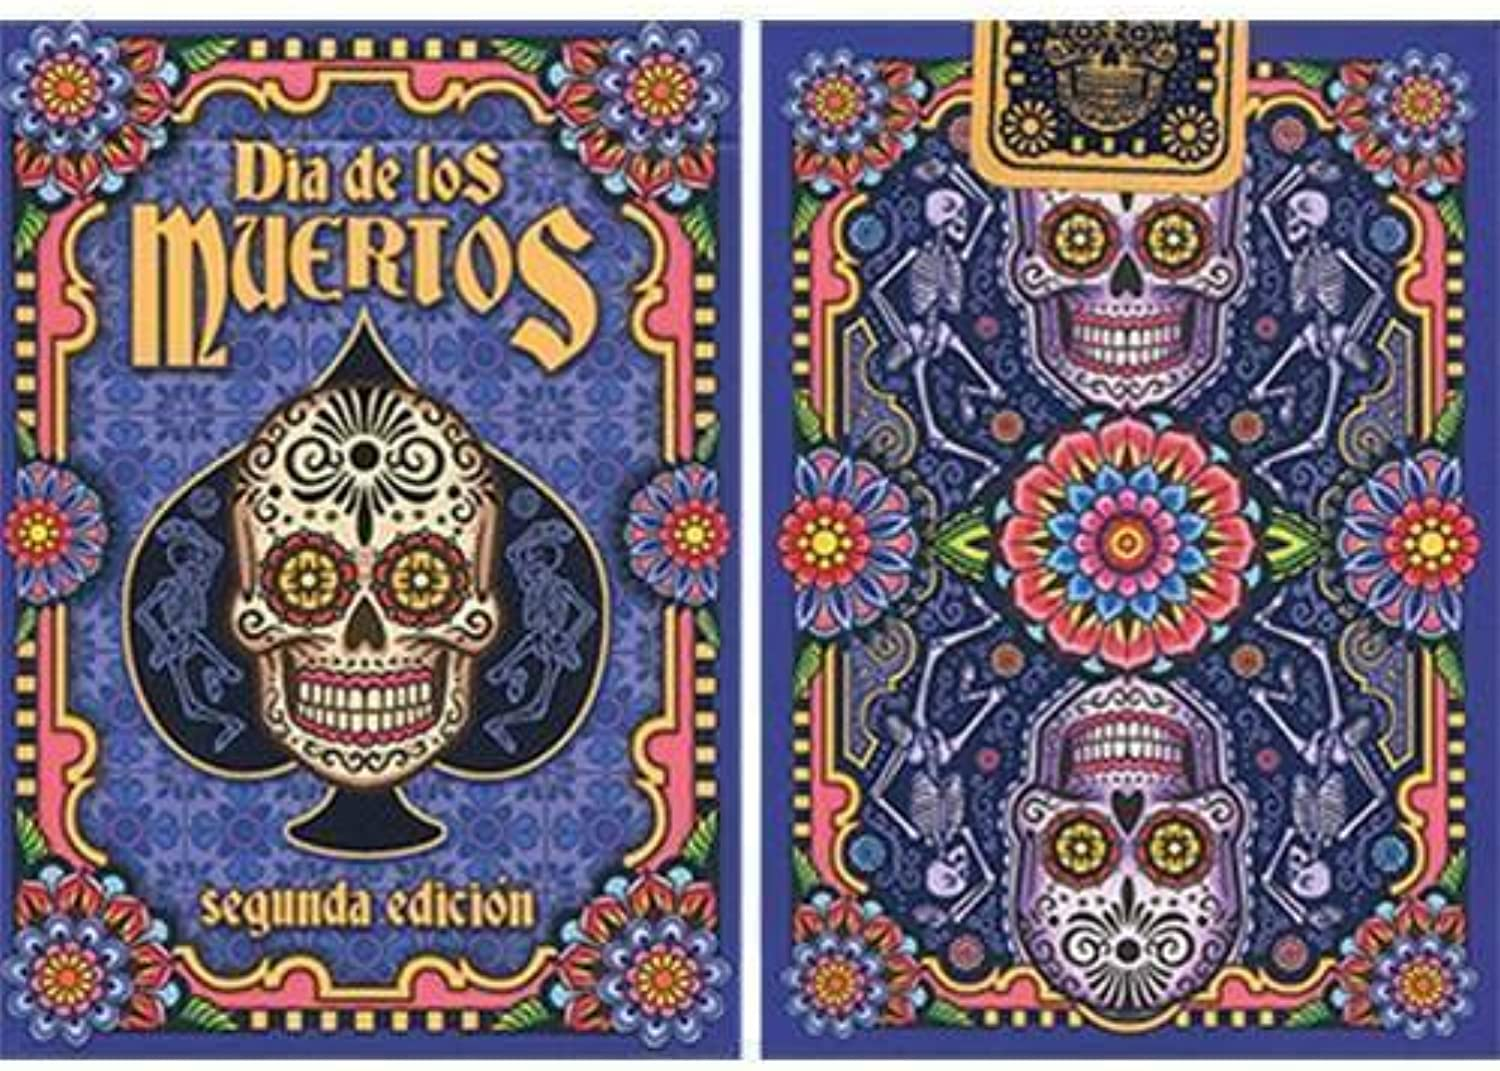 SOLOMAGIA Dia de los Muertos Painted Playing Card (2nd Edition)  Card Games  Magic Tricks and Magic